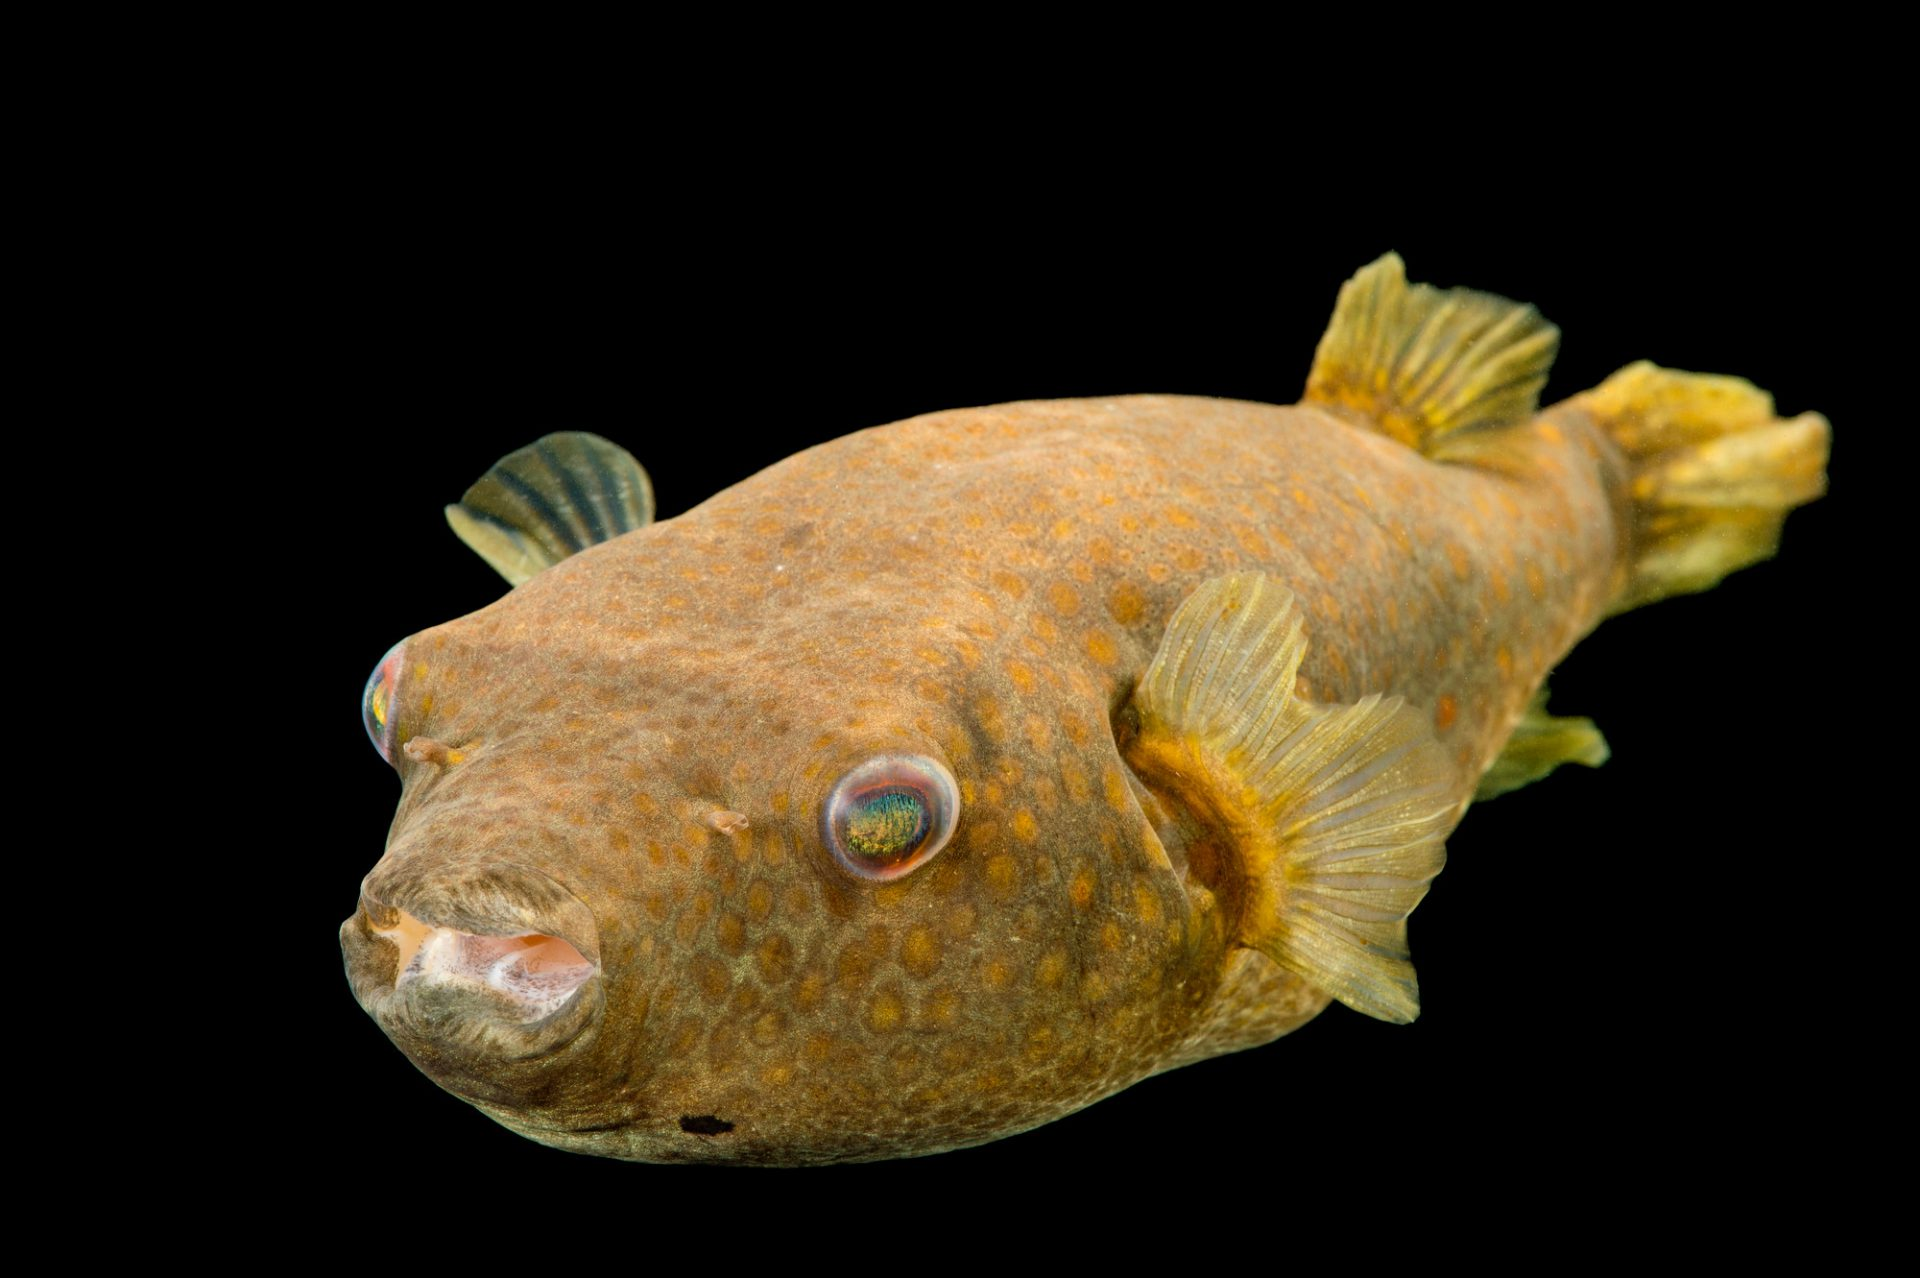 Picture of an Abe's or red-spot pufferfish (Tetraodon abei) at the Newport Aquarium.